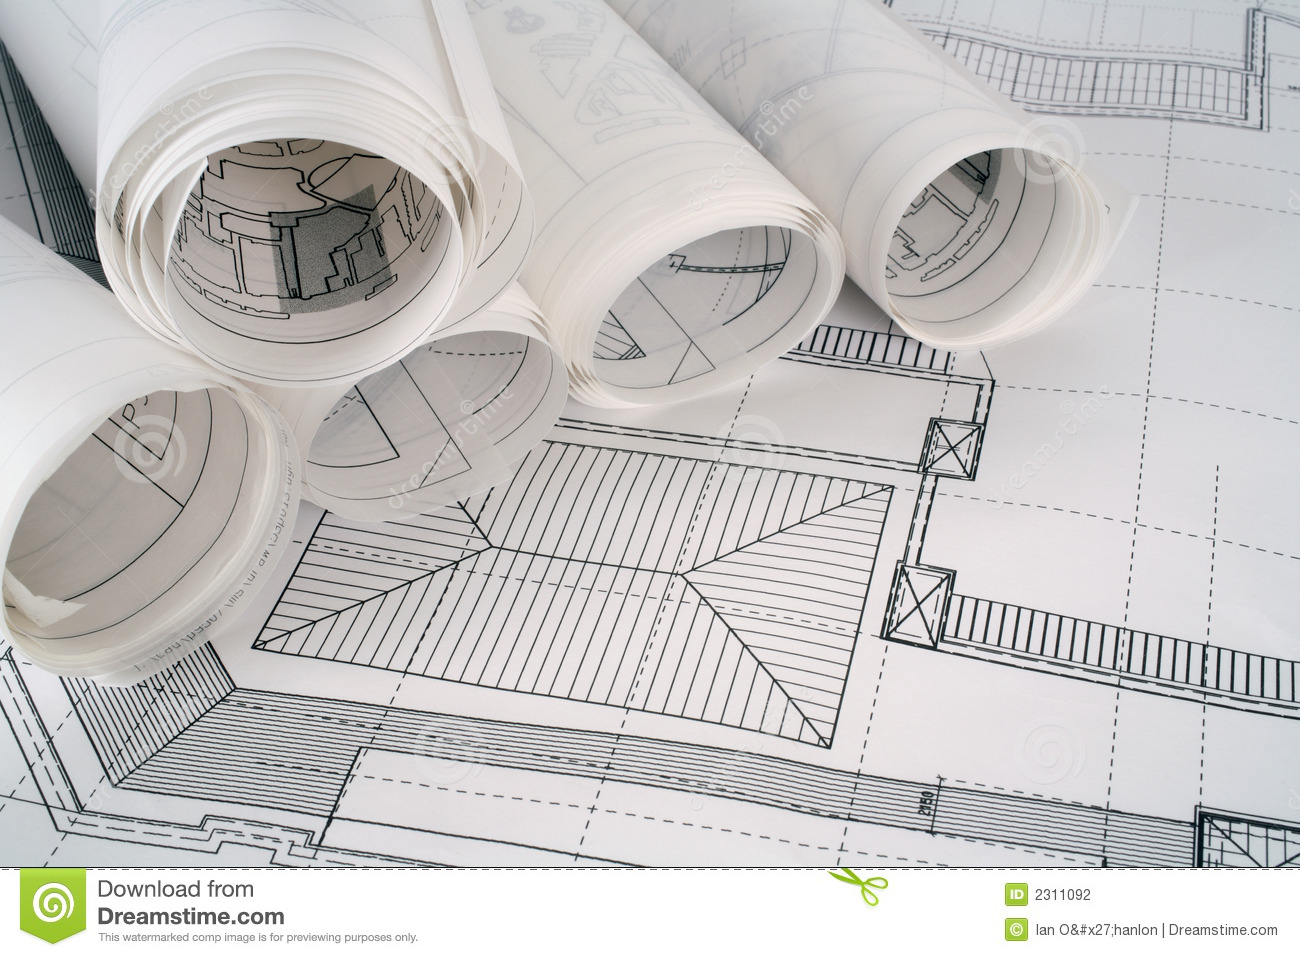 Architect plansdenenasvalencia for Architectural plans